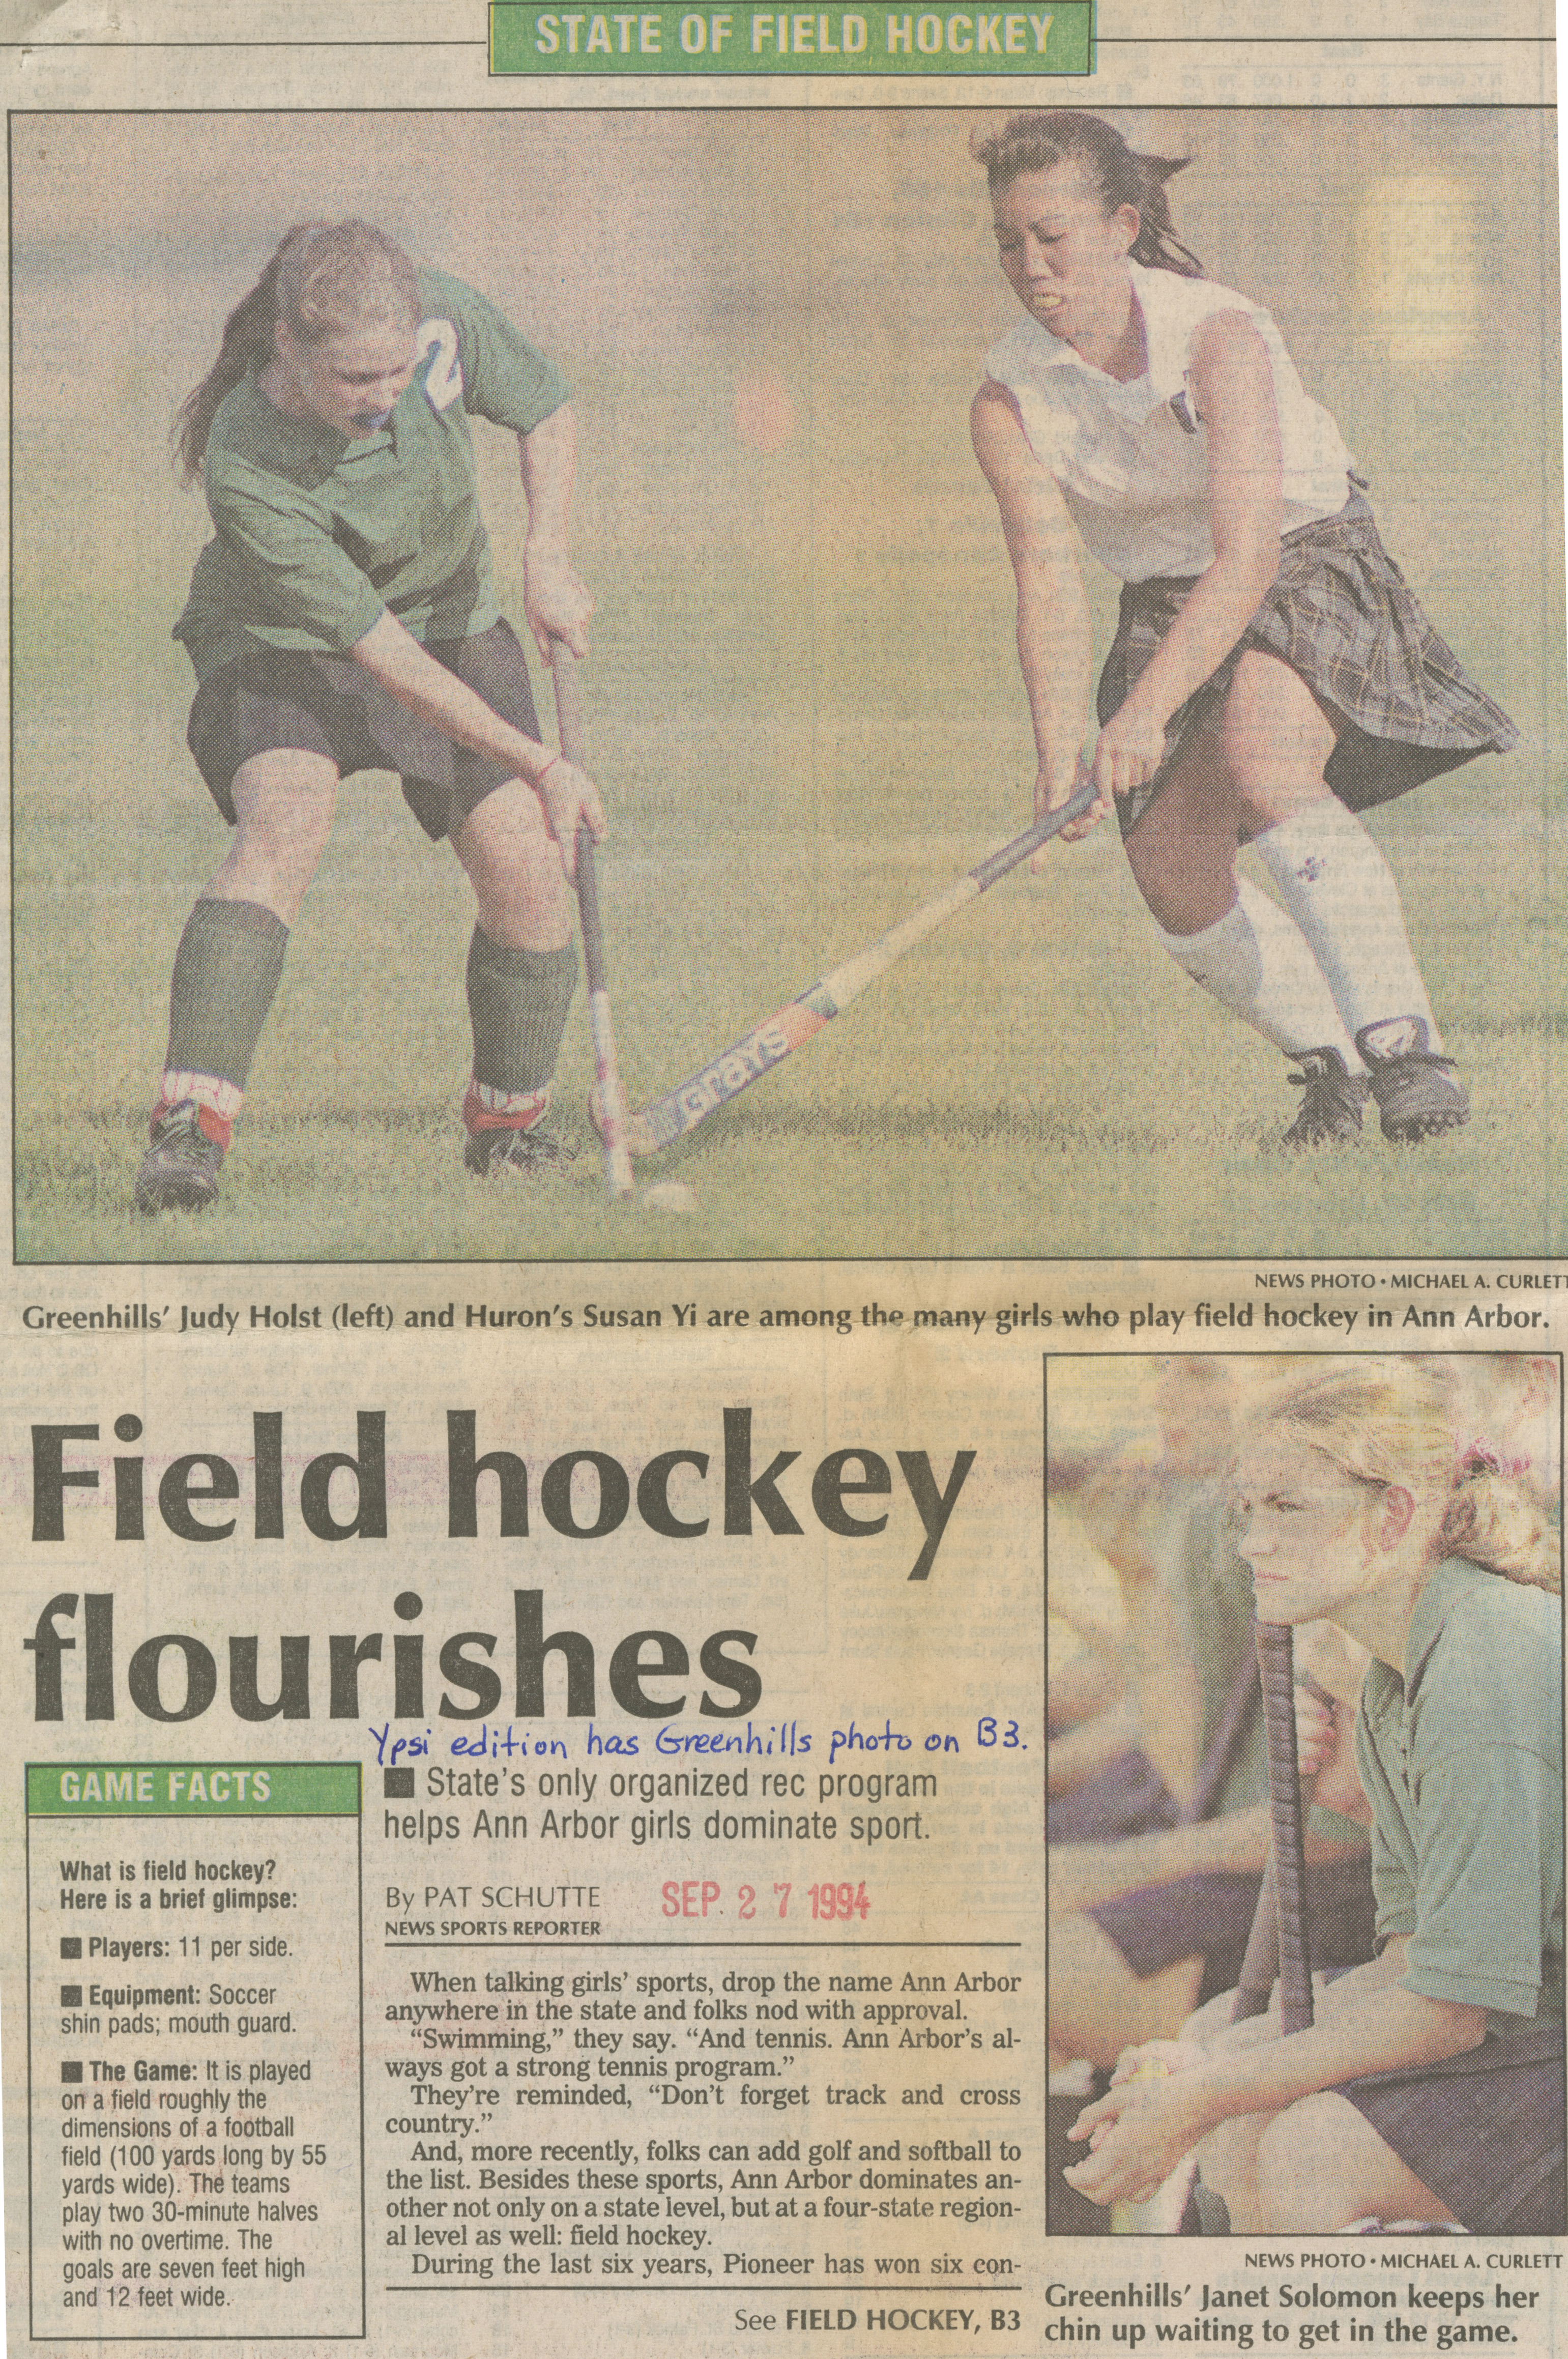 Field Hockey Flourishes image